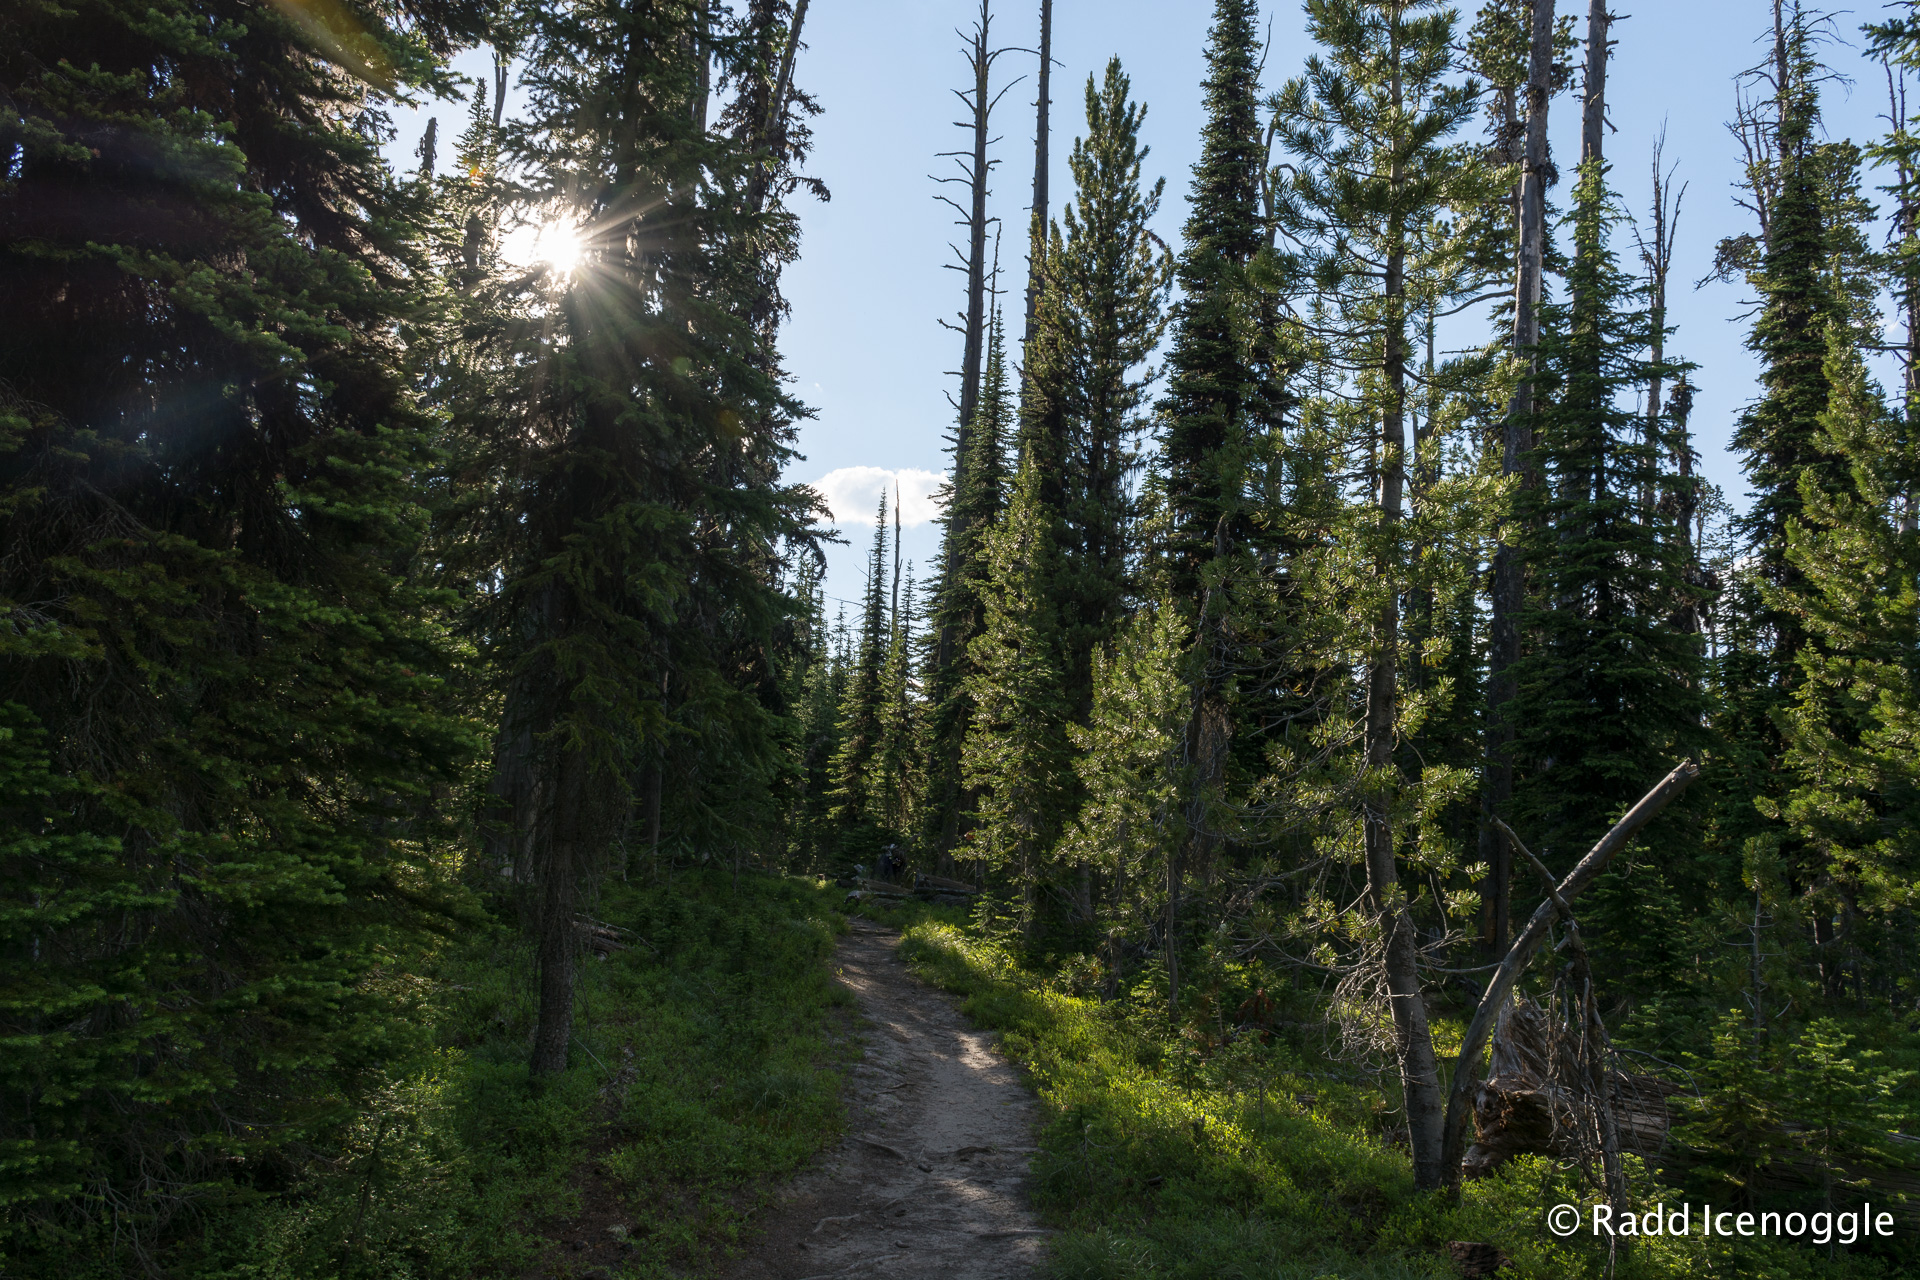 Trail leading to Ch-paa-qn Peak at Mile 0